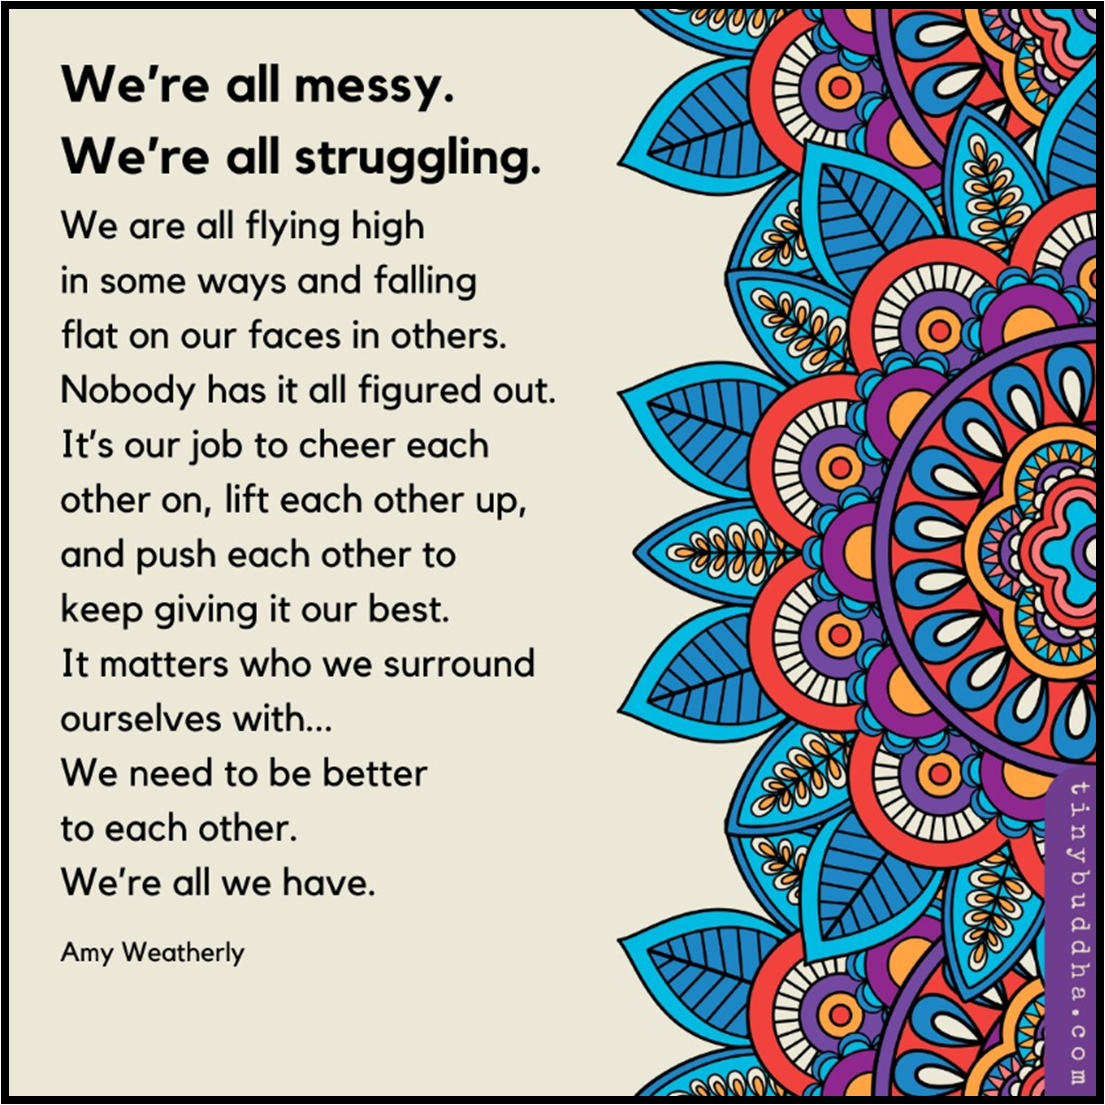 We're all messy. We're all struggling